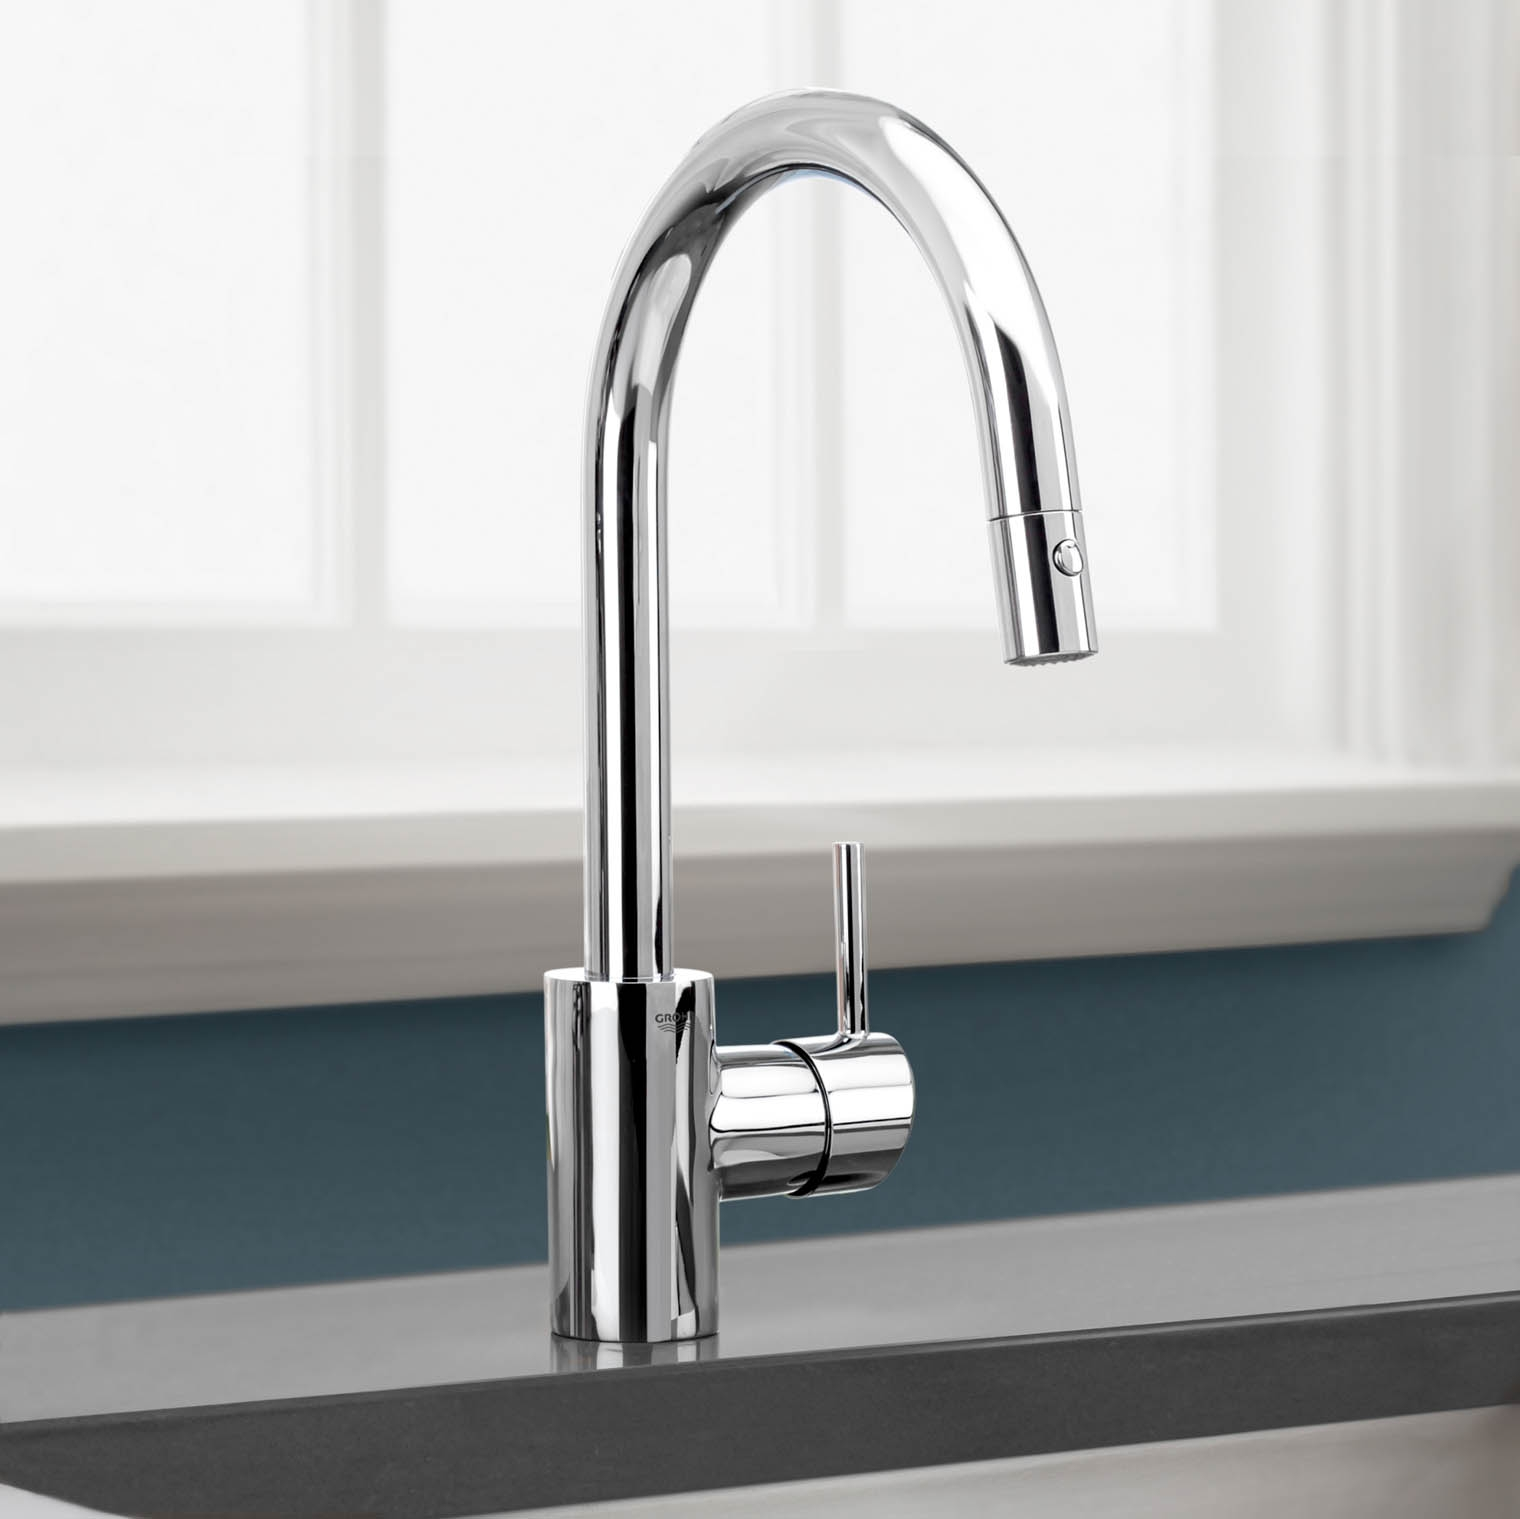 Ideas, grohe talia sink faucet grohe talia sink faucet decor fabulous grohe faucets for contemporary kitchen decoration 1520 x 1519  .